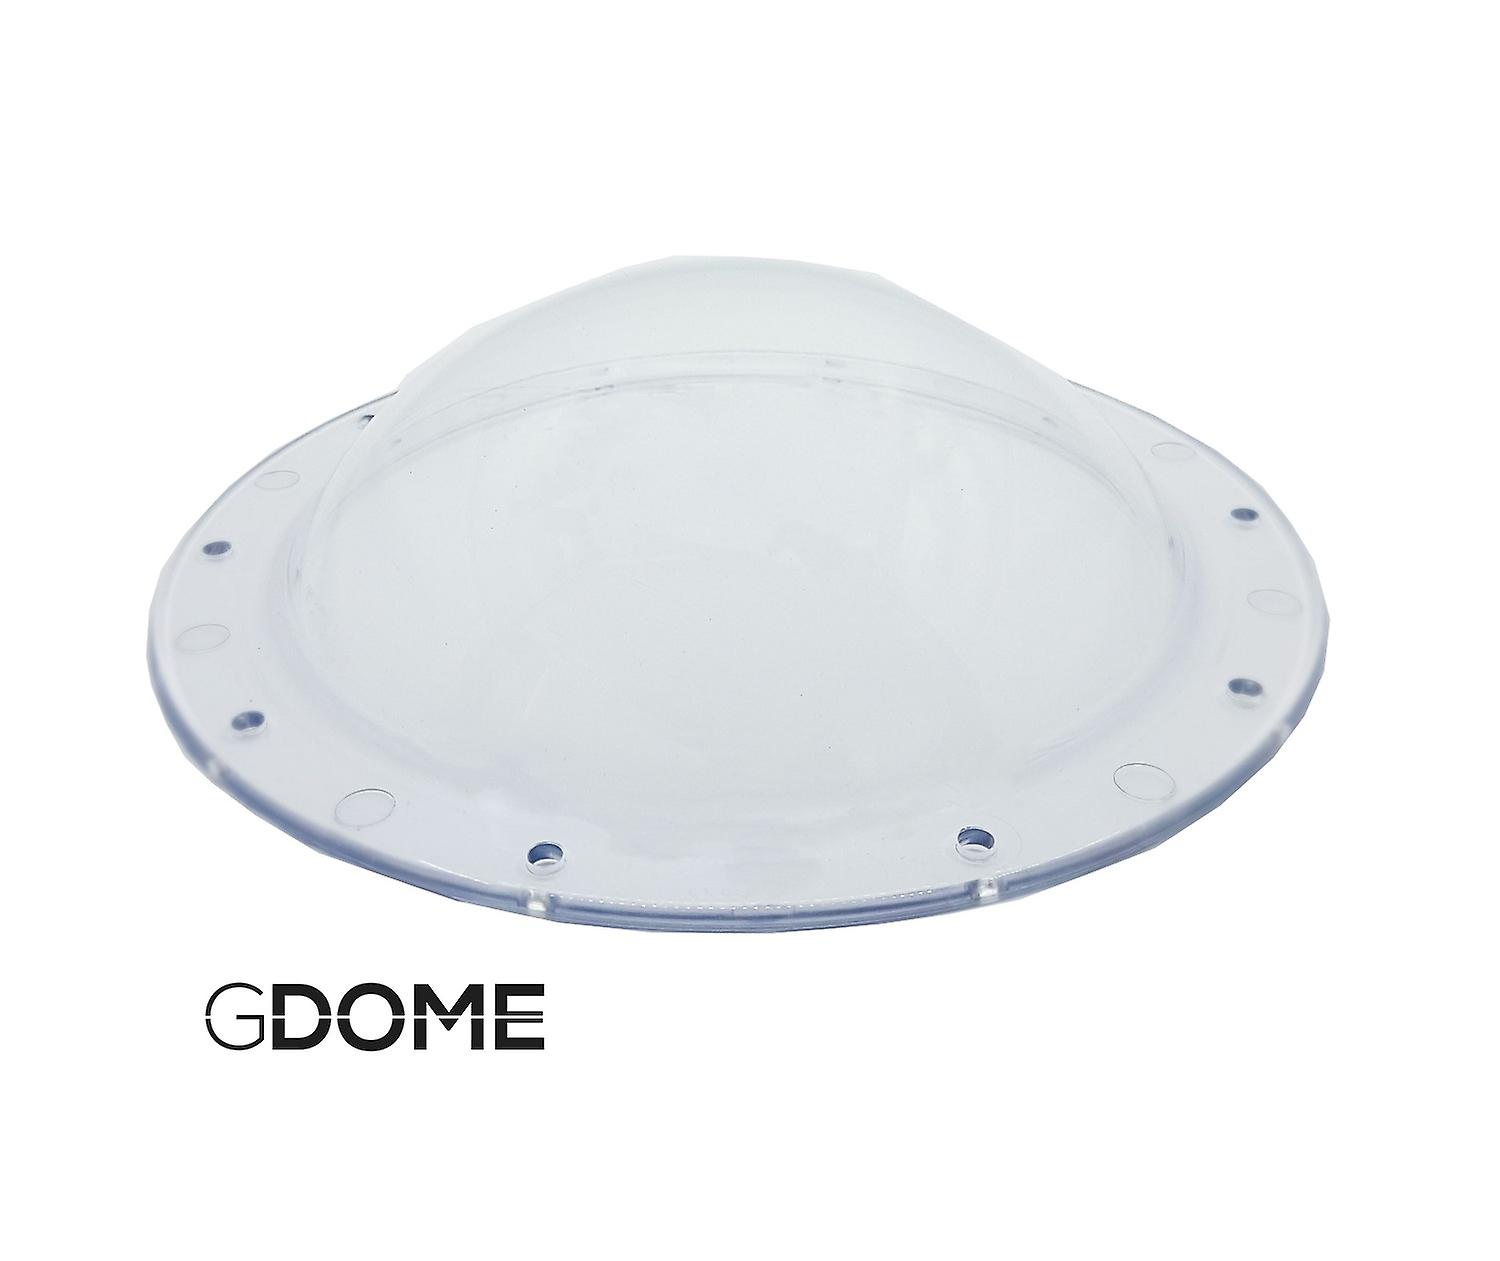 GDome erstatning buede linsen For PDS GDome